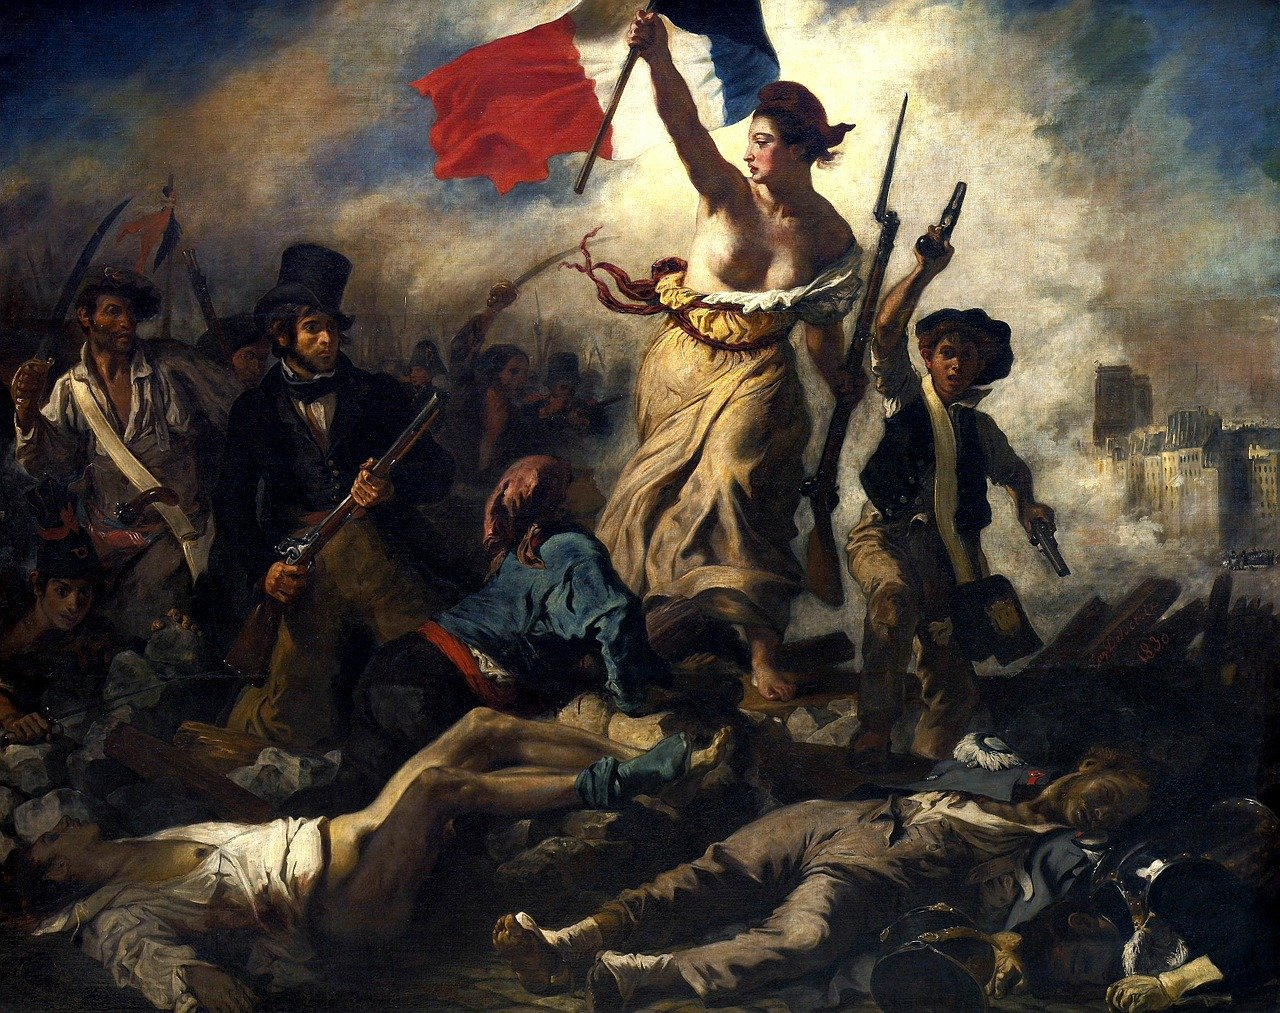 Liberty Leading the People painting on display at the Louvre